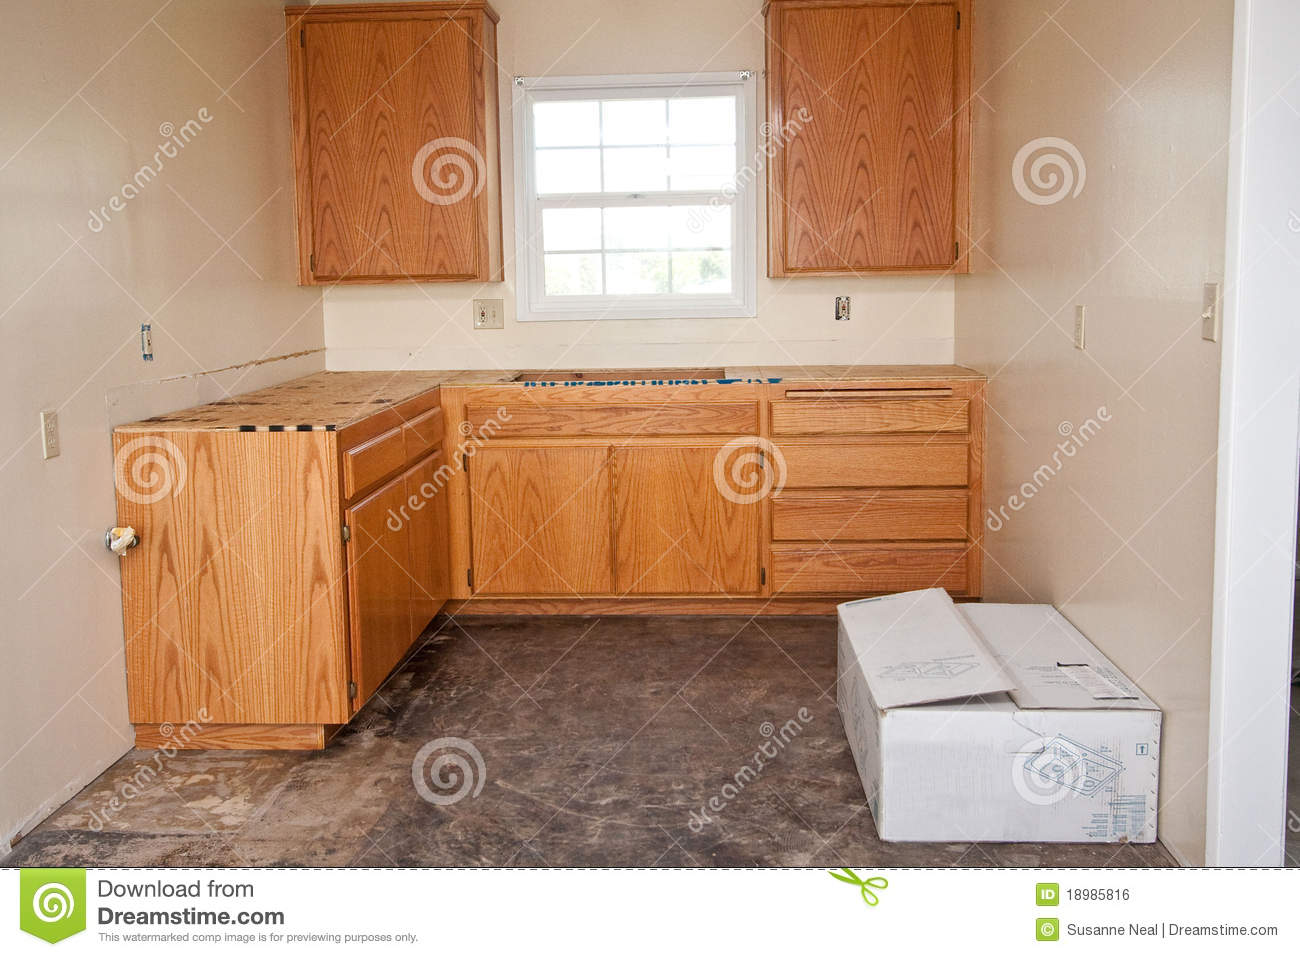 royalty free stock image kitchen cabinets countertop image kitchen cabinets and countertops Kitchen cabinets without countertop